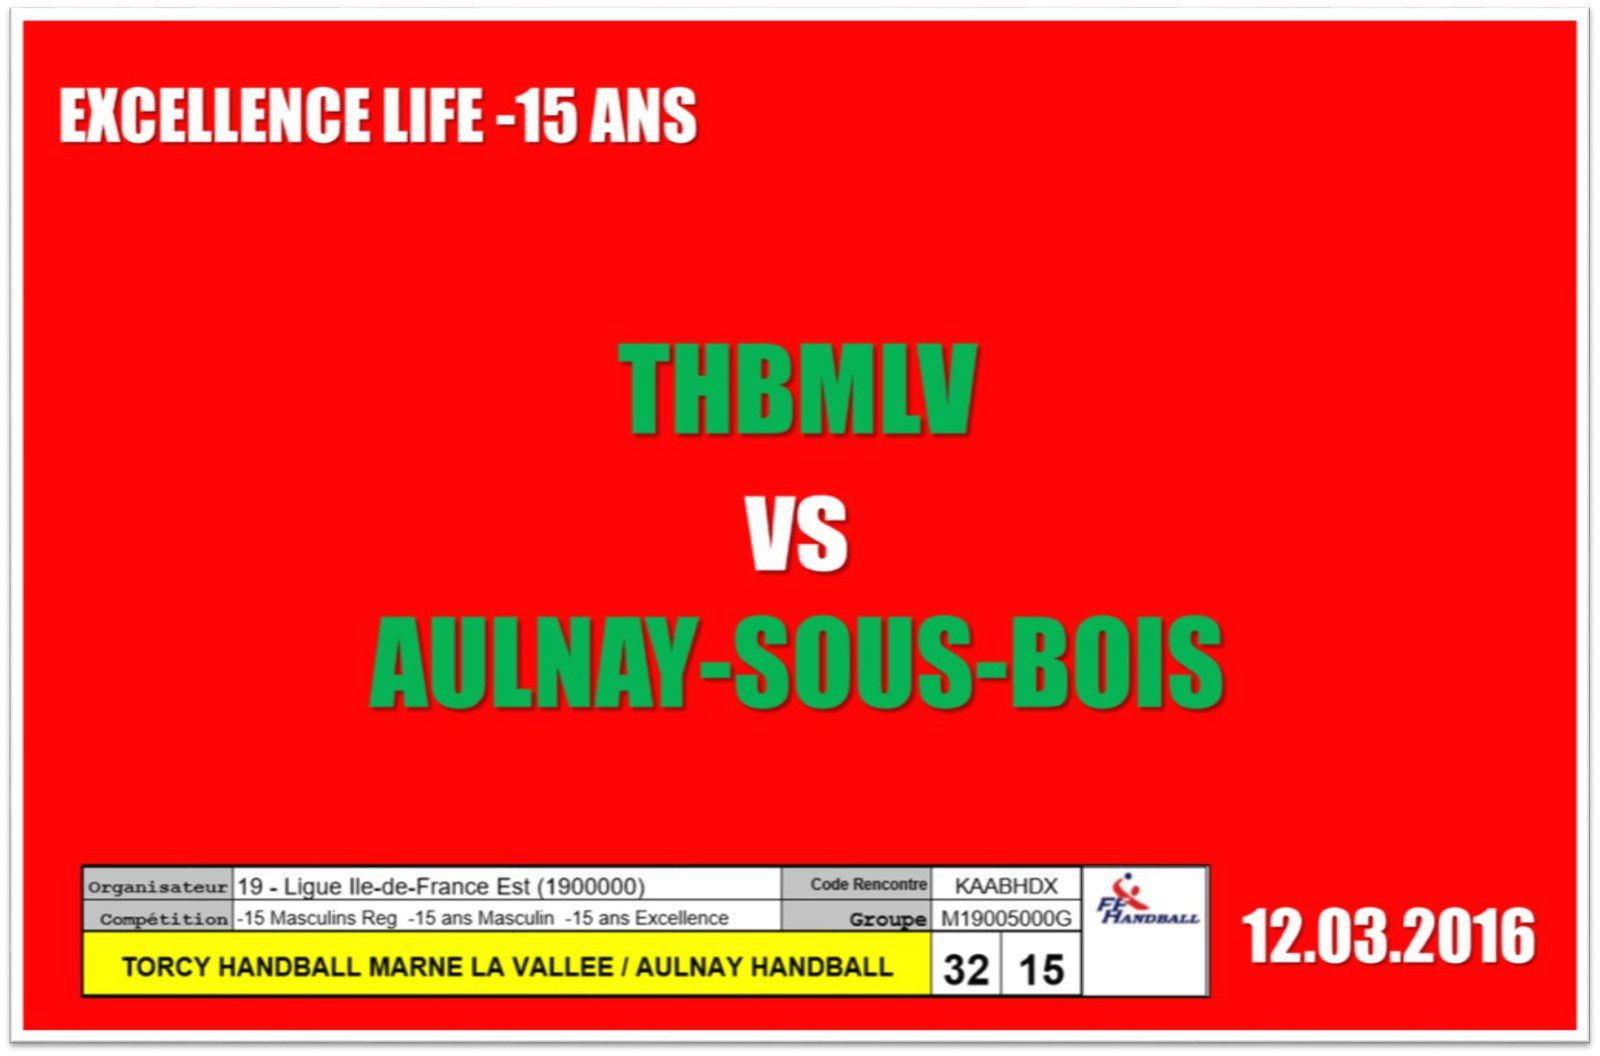 THBMLV vs AULNAY (Excellence LIFE -15 Ans) 12.03.2016